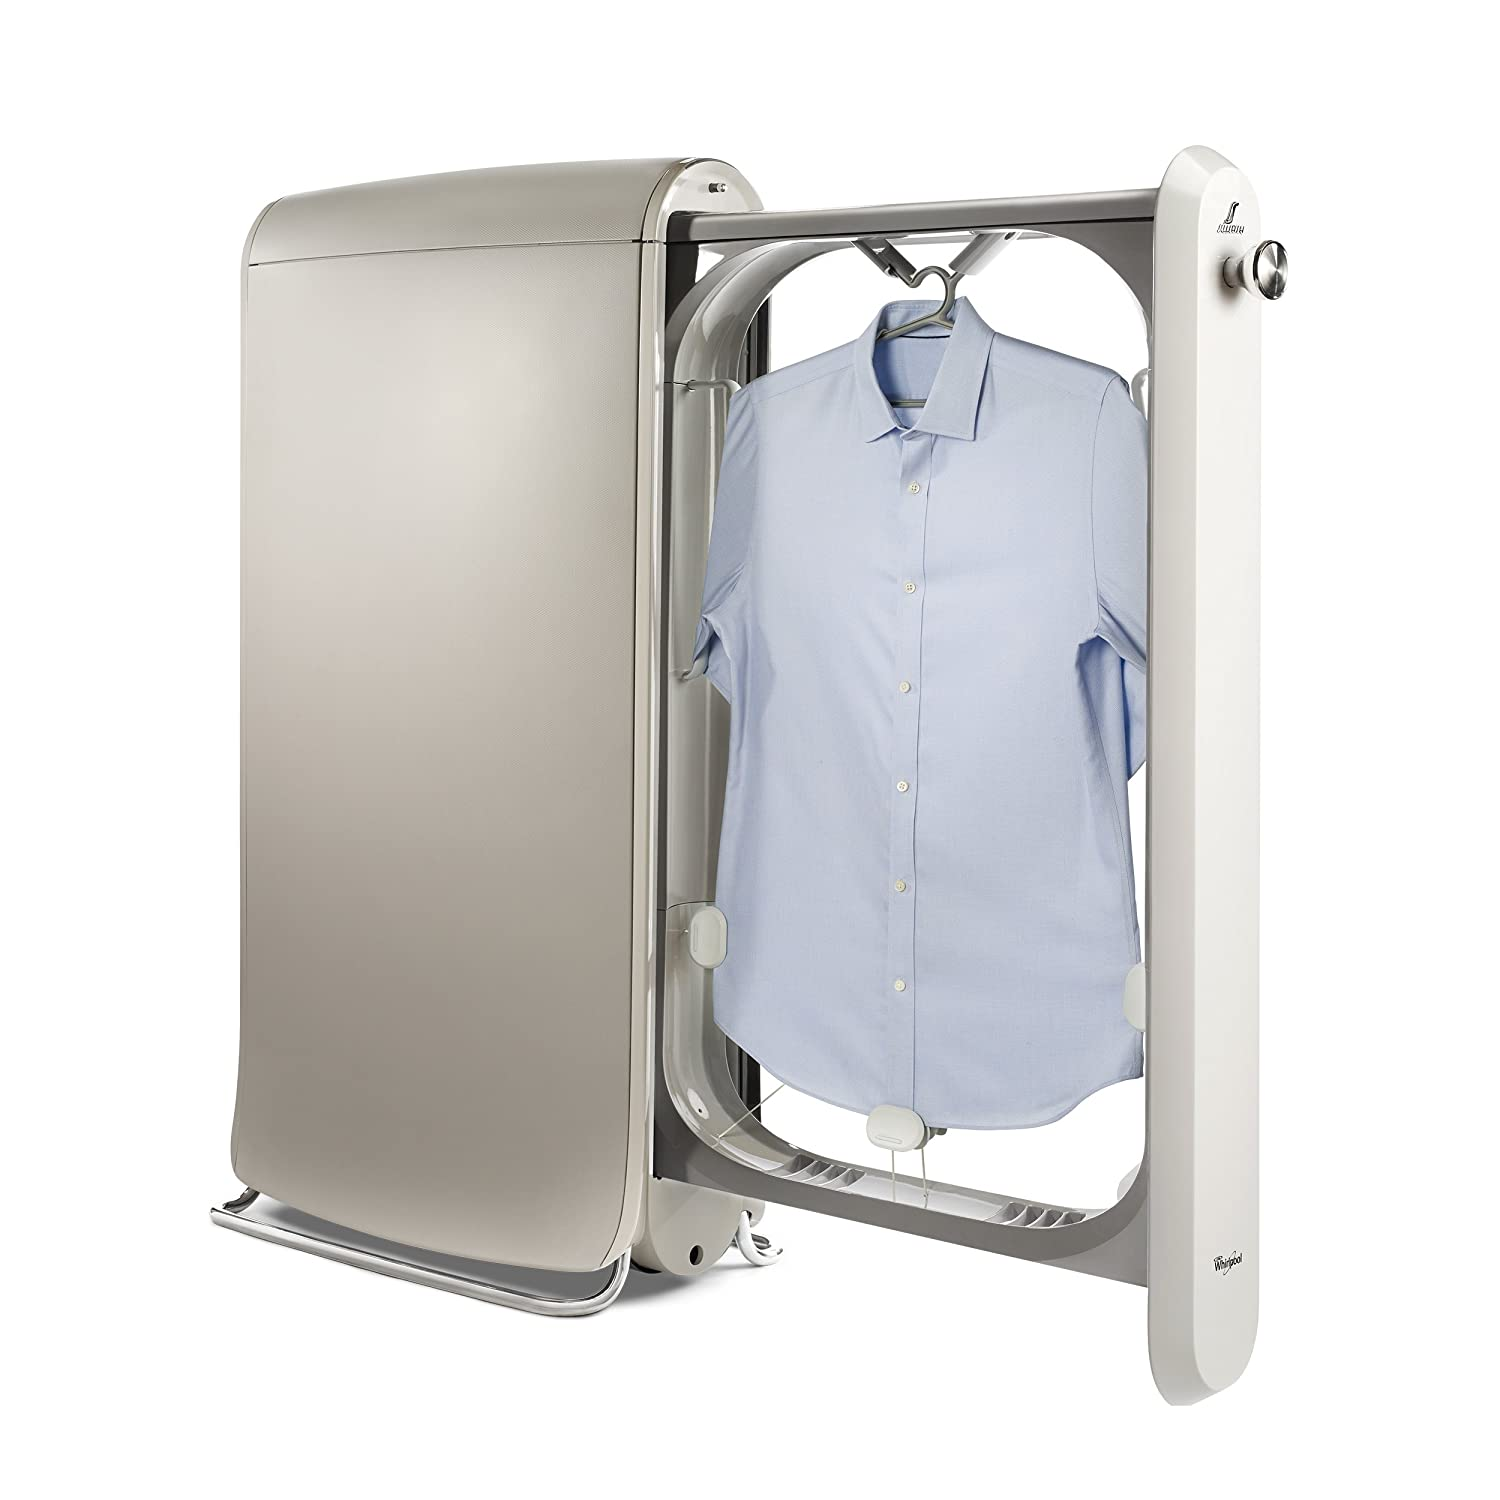 Swash SFF1000CLN Express Clothing Care System, Linen